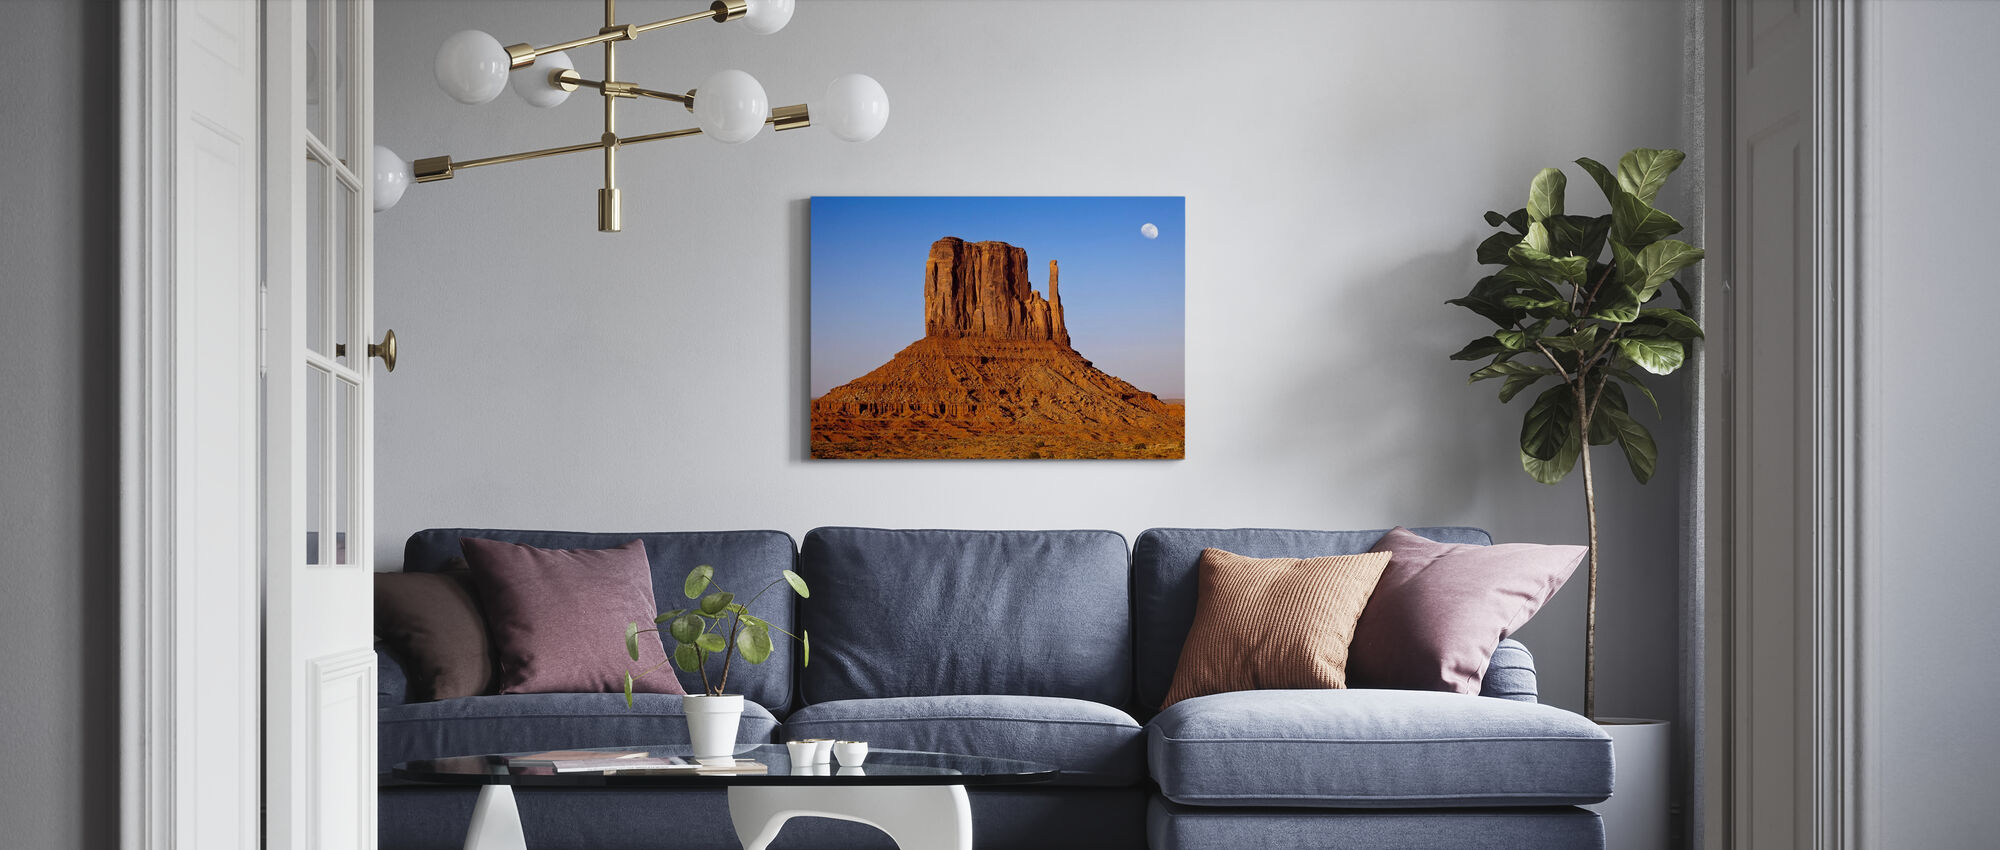 Monument Valley at Sunset - Canvas print - Living Room